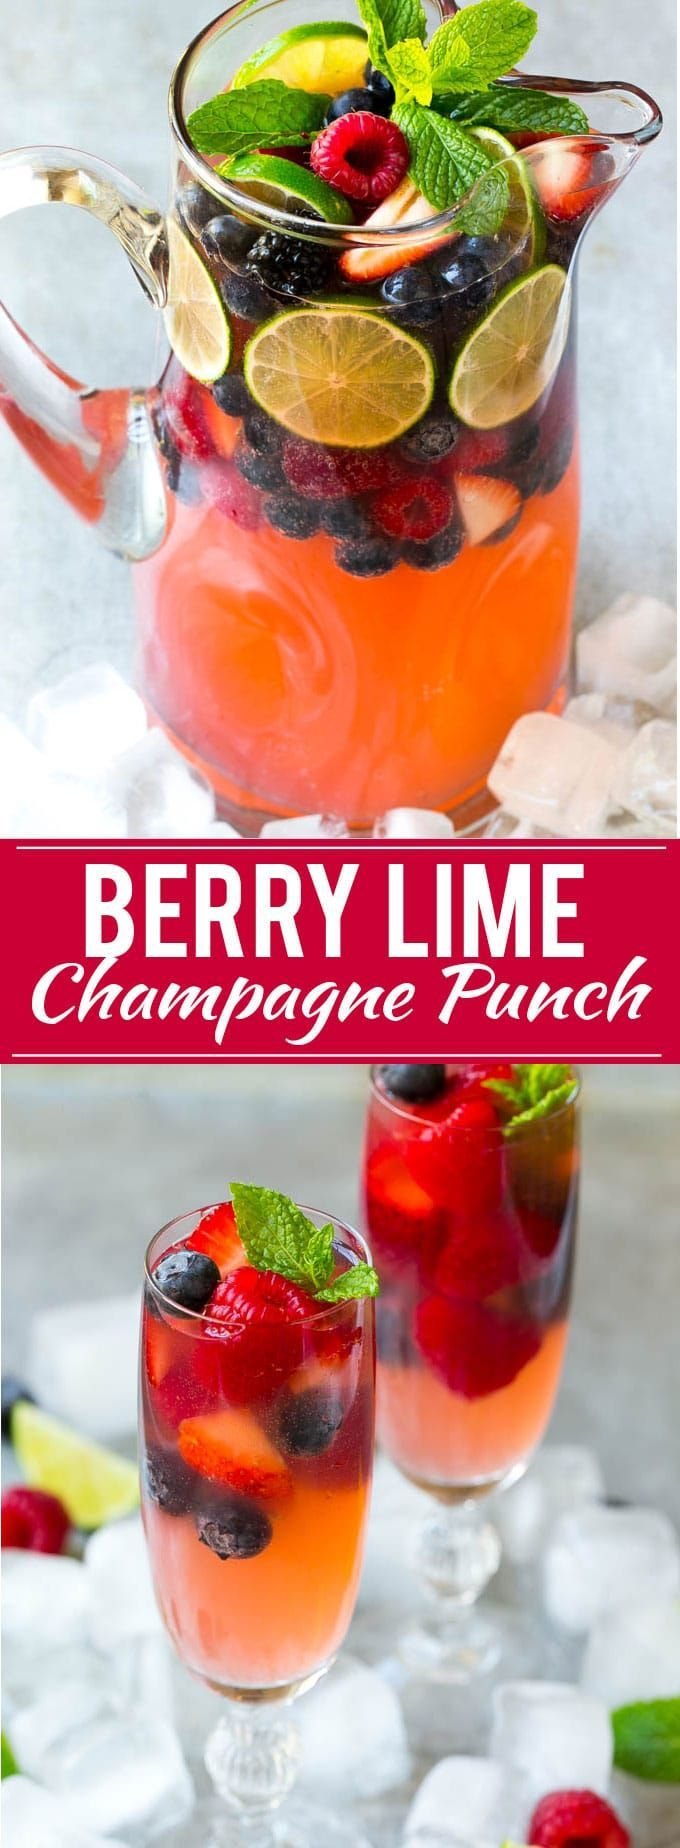 Berry+Champagne+Punch+Recipe+|+Champagne+Cocktail+|+Lime+Cocktail+|+Berry+Punch+|+Champagne+Recipe